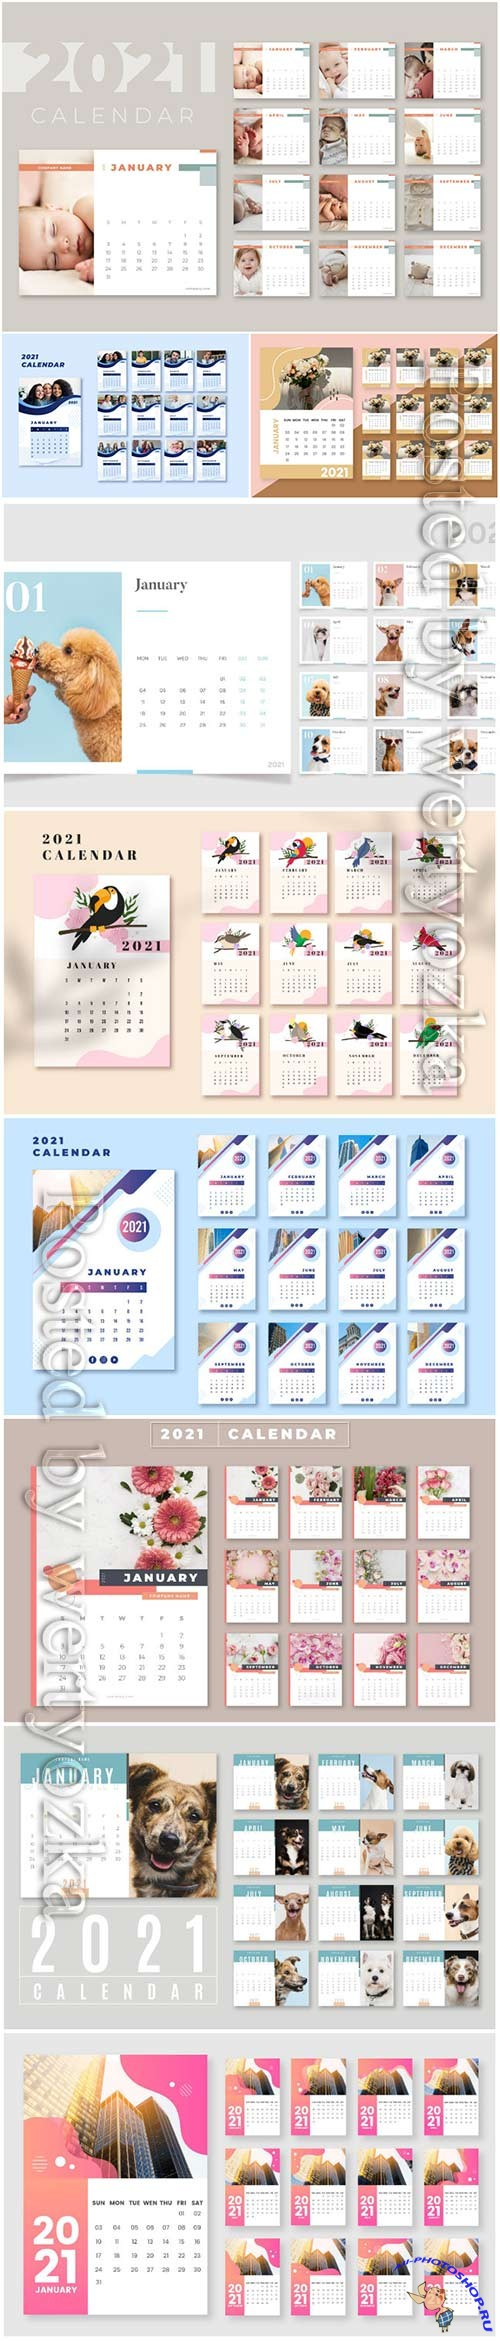 2021 calendar vector set templates vol 2